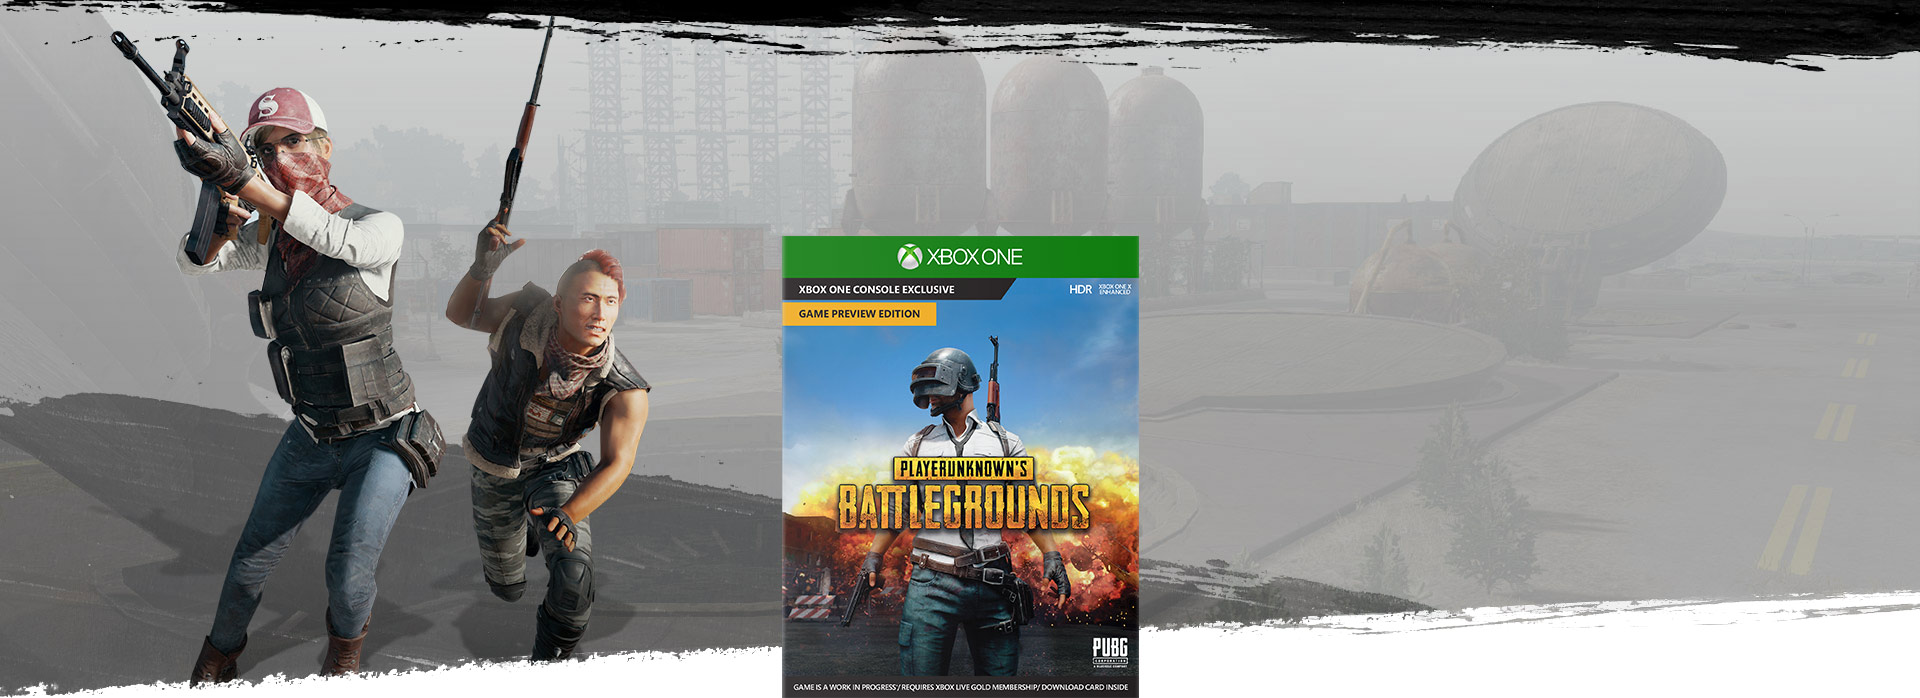 PlayerUnknown's Battlegrounds boxshot, with background image of two weapon wielding characters with military base in the background